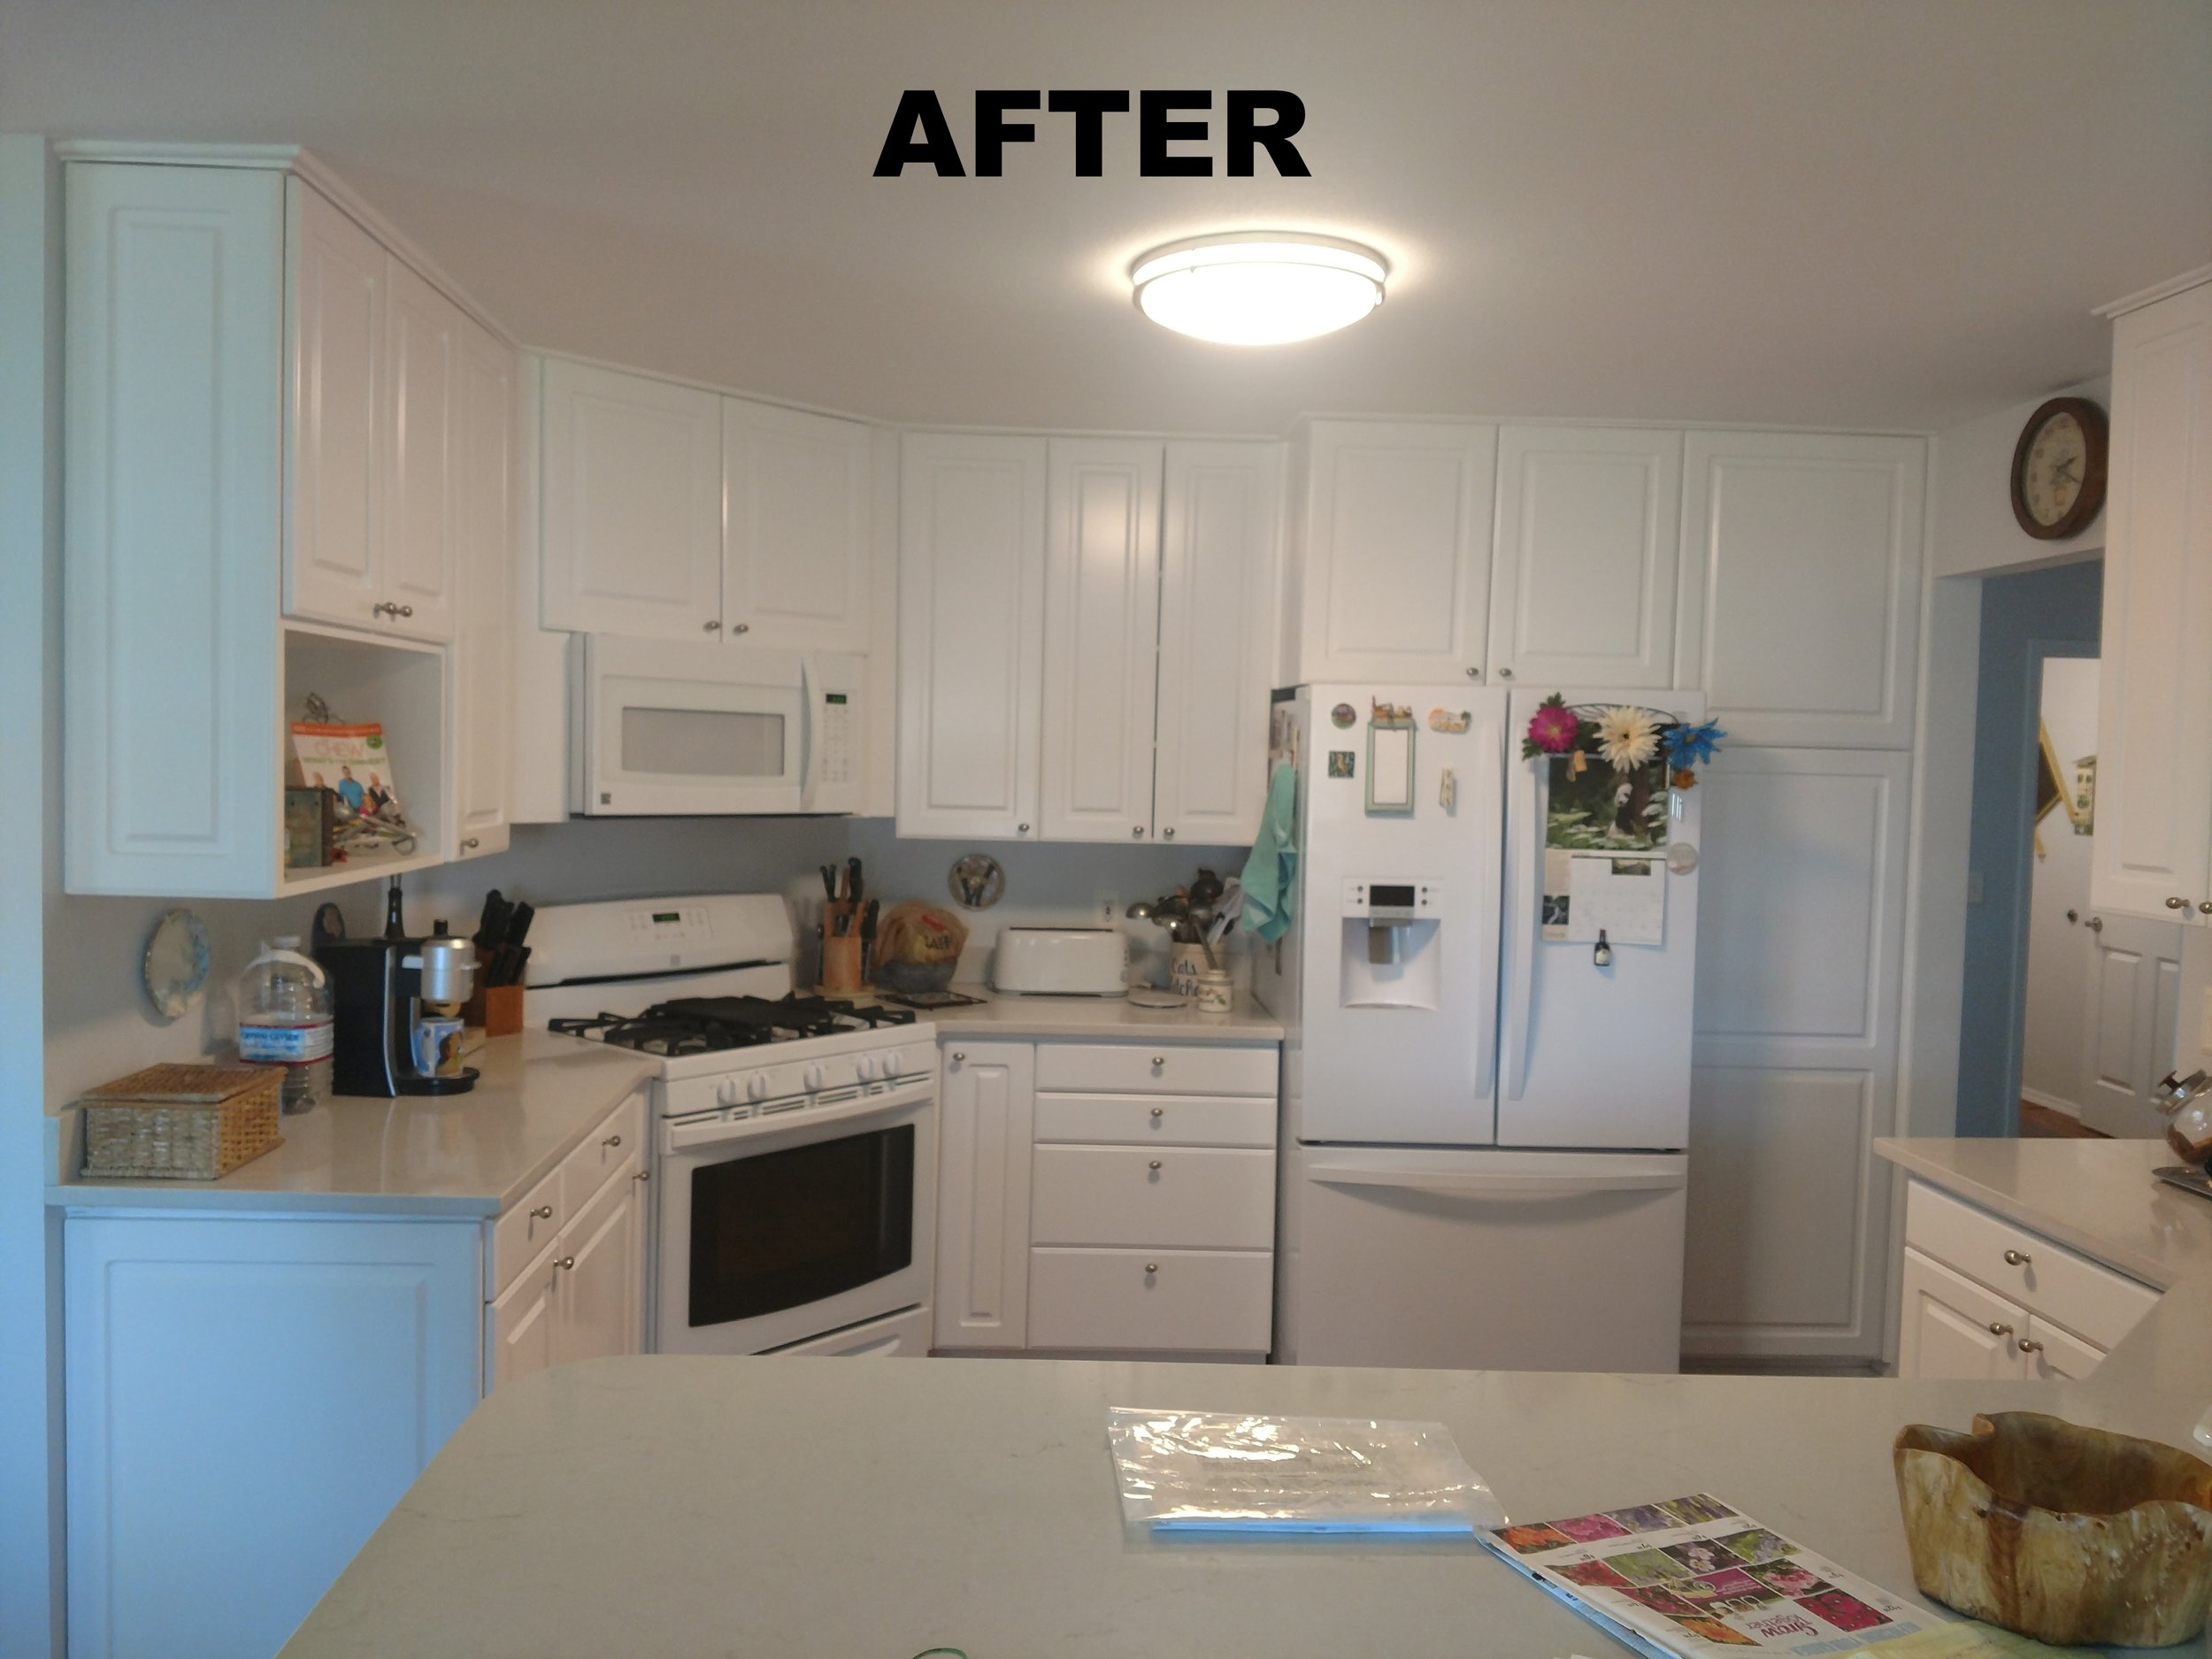 kitchen remodle after.jpg